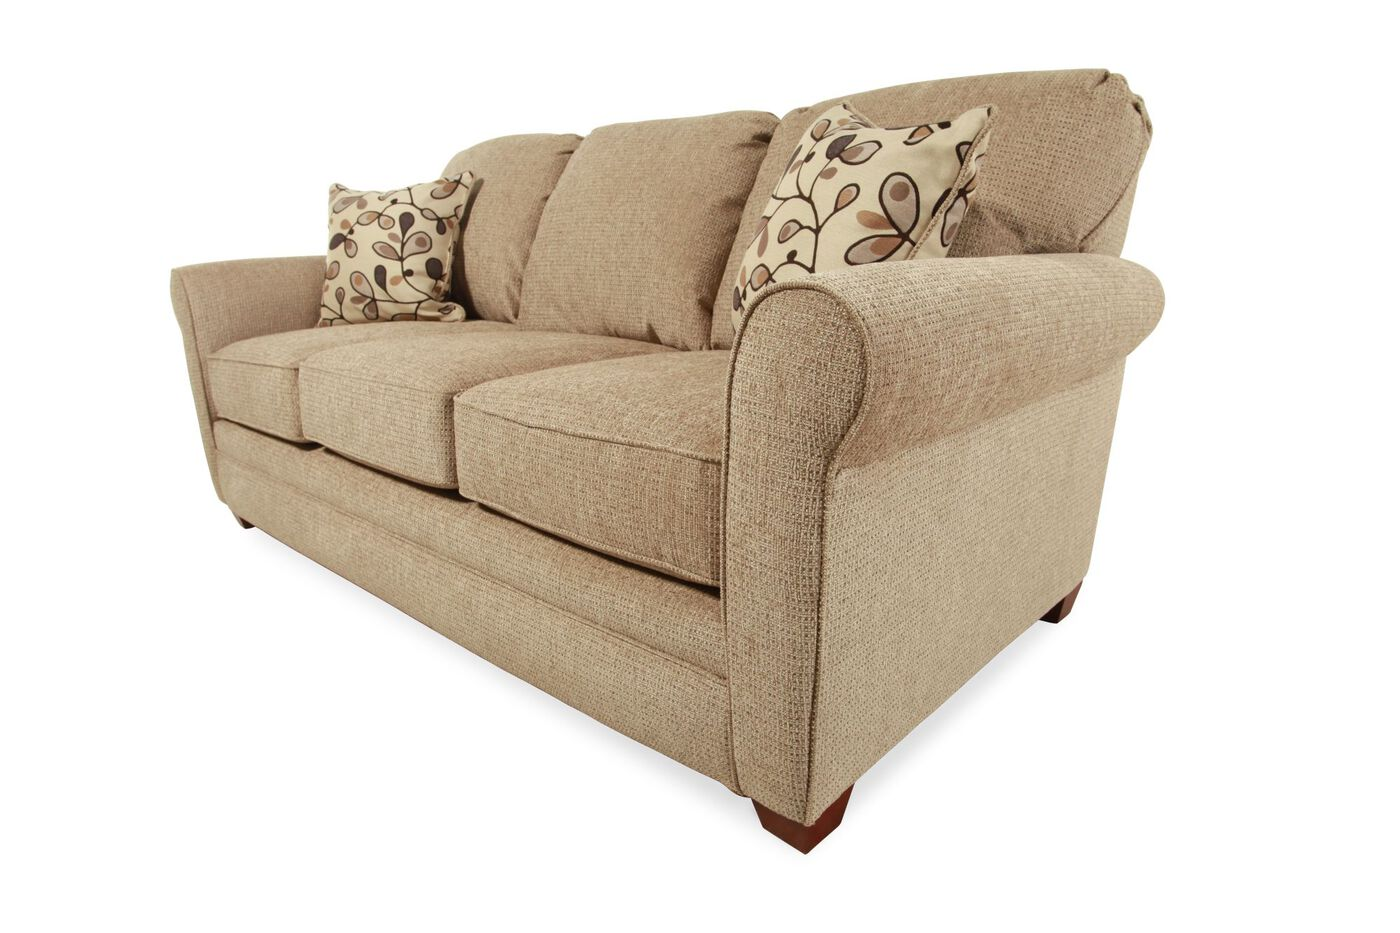 I Rest Traditional 84 Sleeper Sofa In Brown Mathis